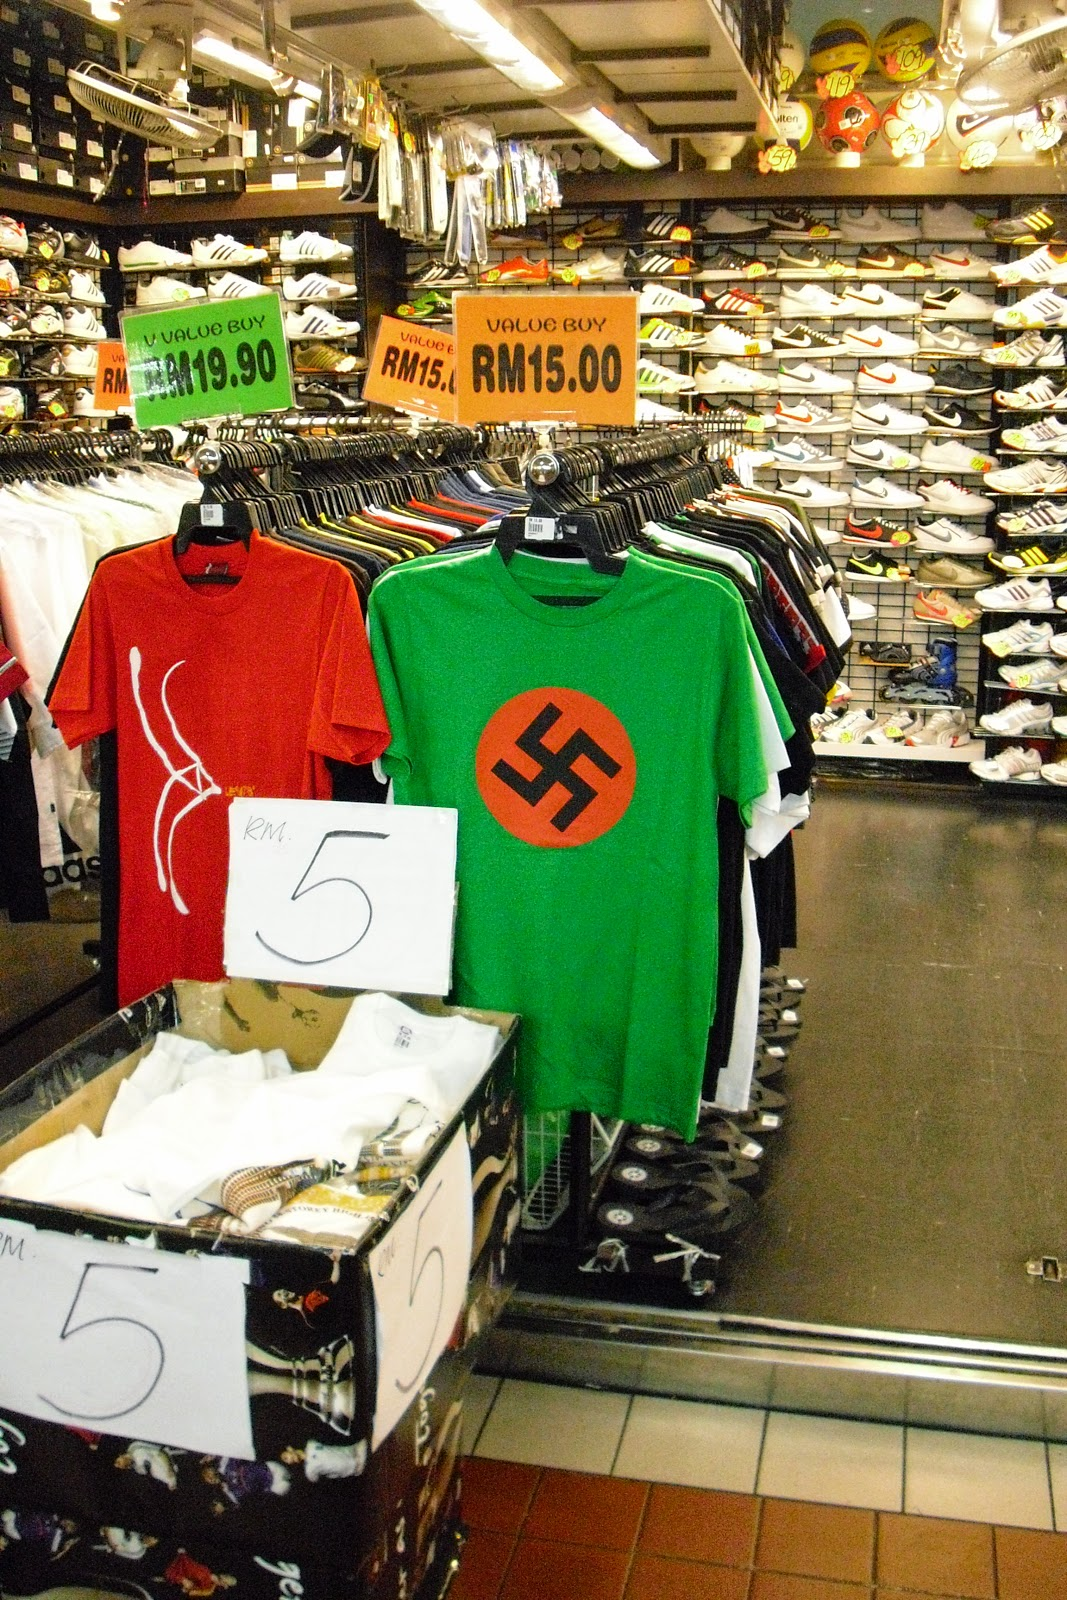 The swastika: A symbol of good or bad, or both?